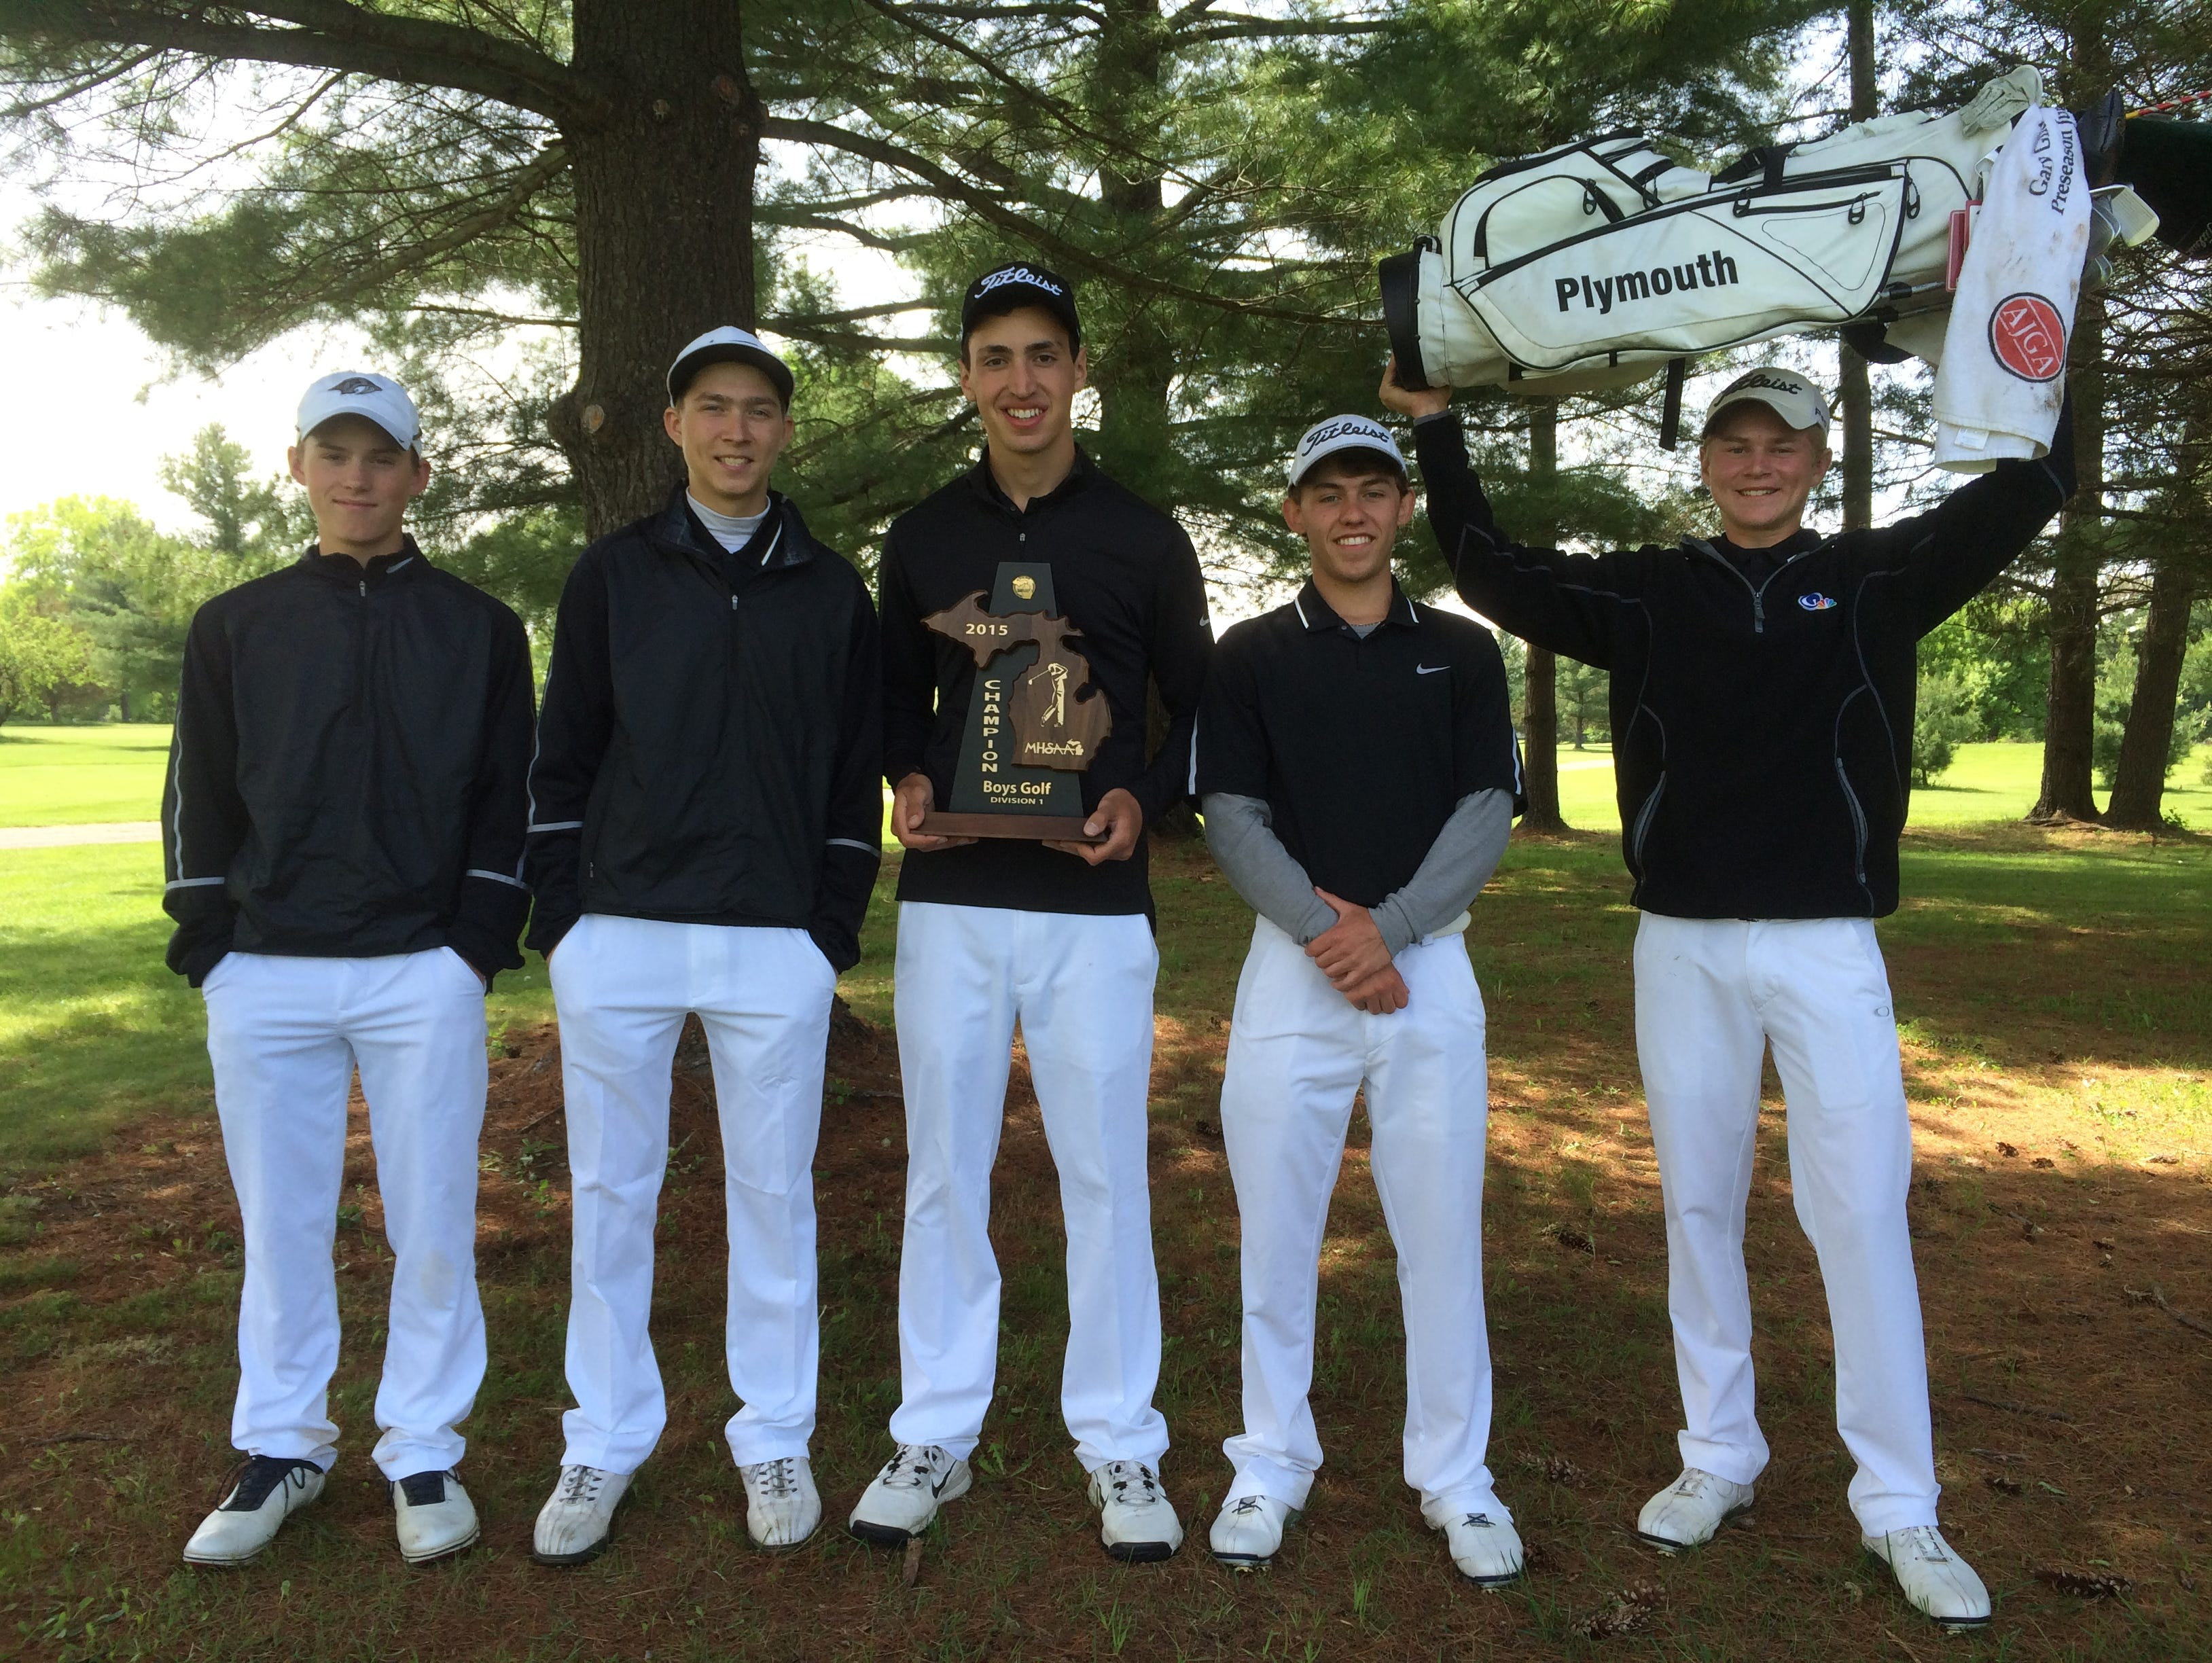 Plymouth's varsity boys golf team celebrates after winning Wednesday's Division 1 district at Pine View Golf Course in Ypsilanti.